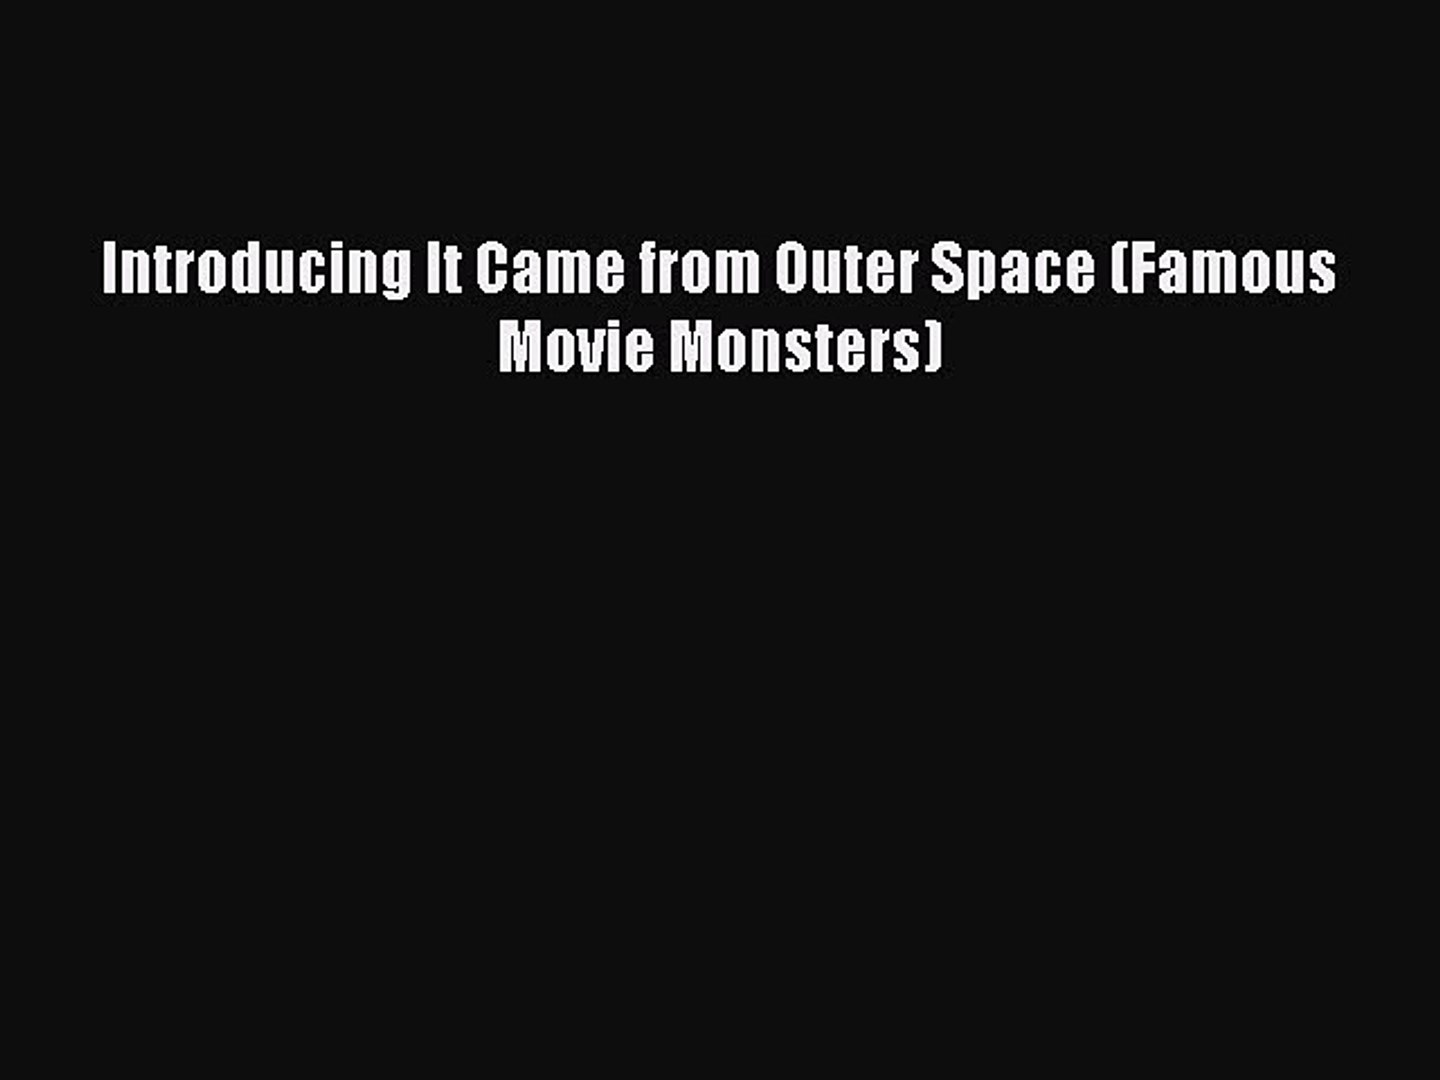 Download Introducing It Came from Outer Space (Famous Movie Monsters) Ebook Online